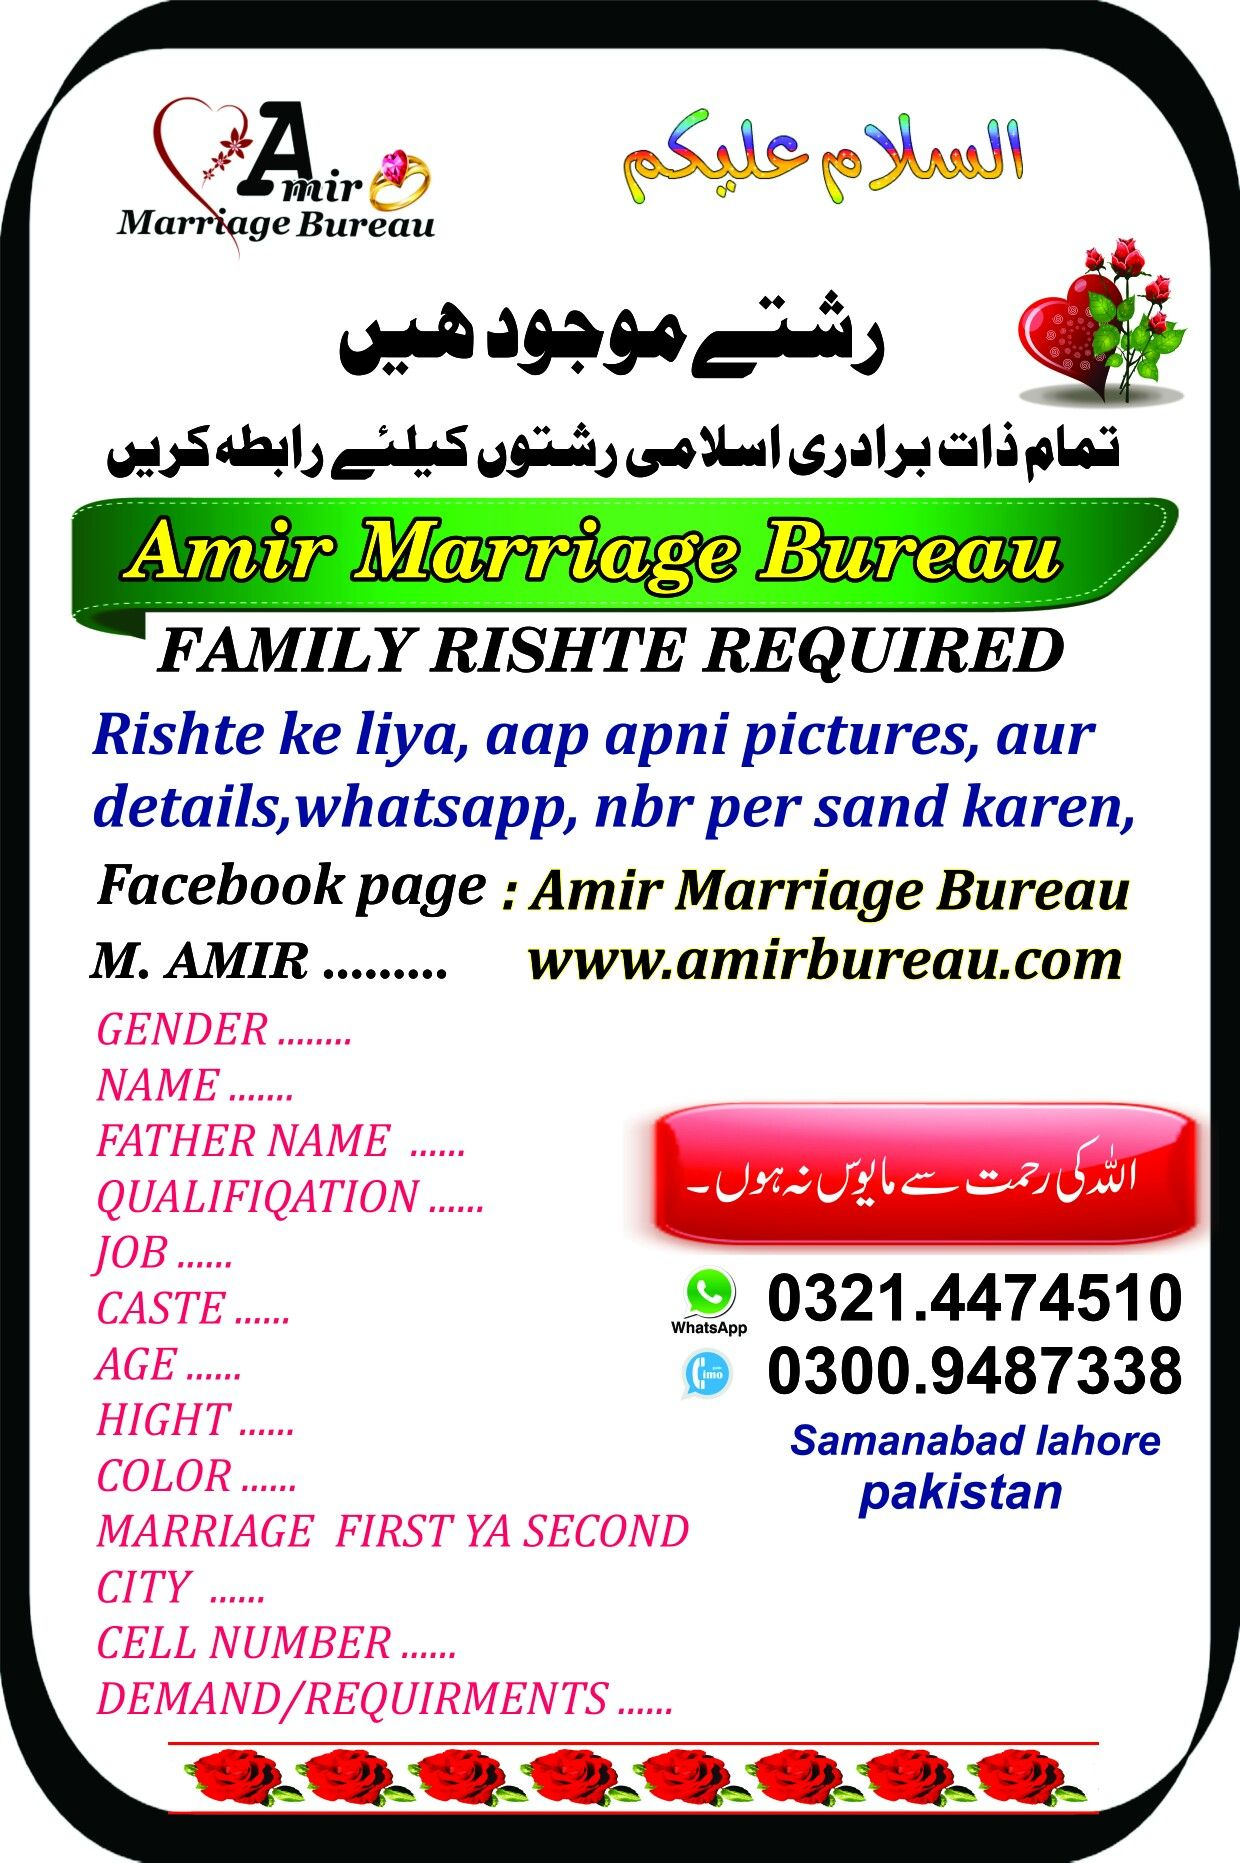 Pin by Muhammad Amir on Amir Marriage Bureau  Pakistan